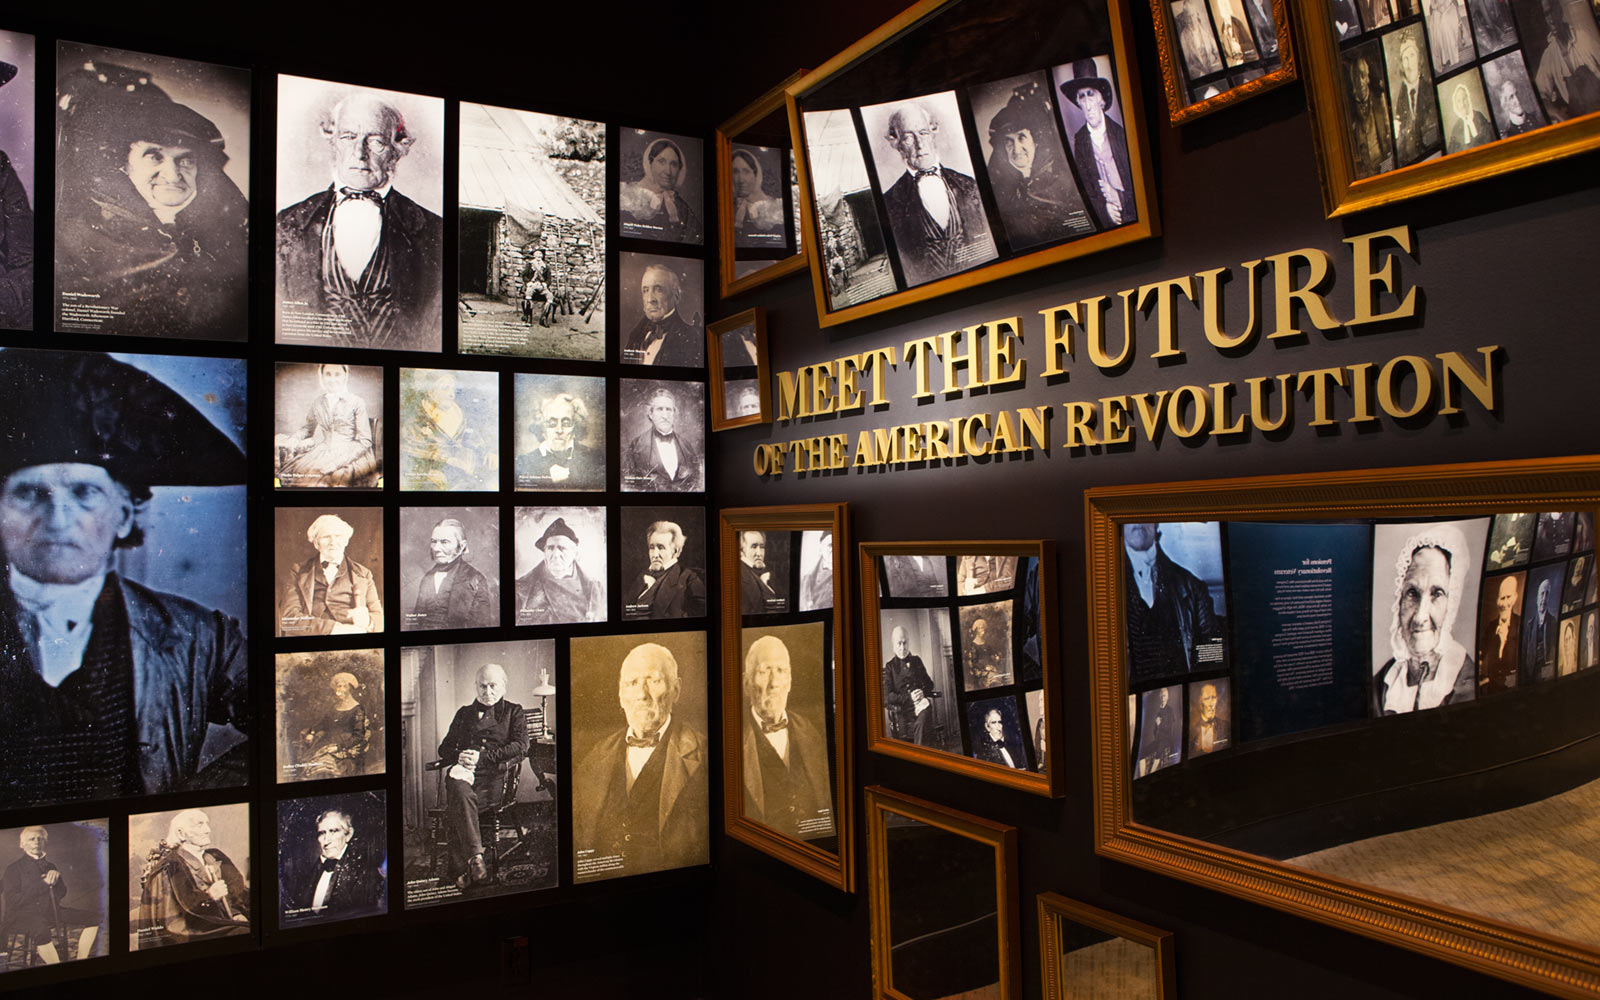 Photographs of People from the Revolution, Museum of the American Revolution, Philadelphia, Pennsylvania